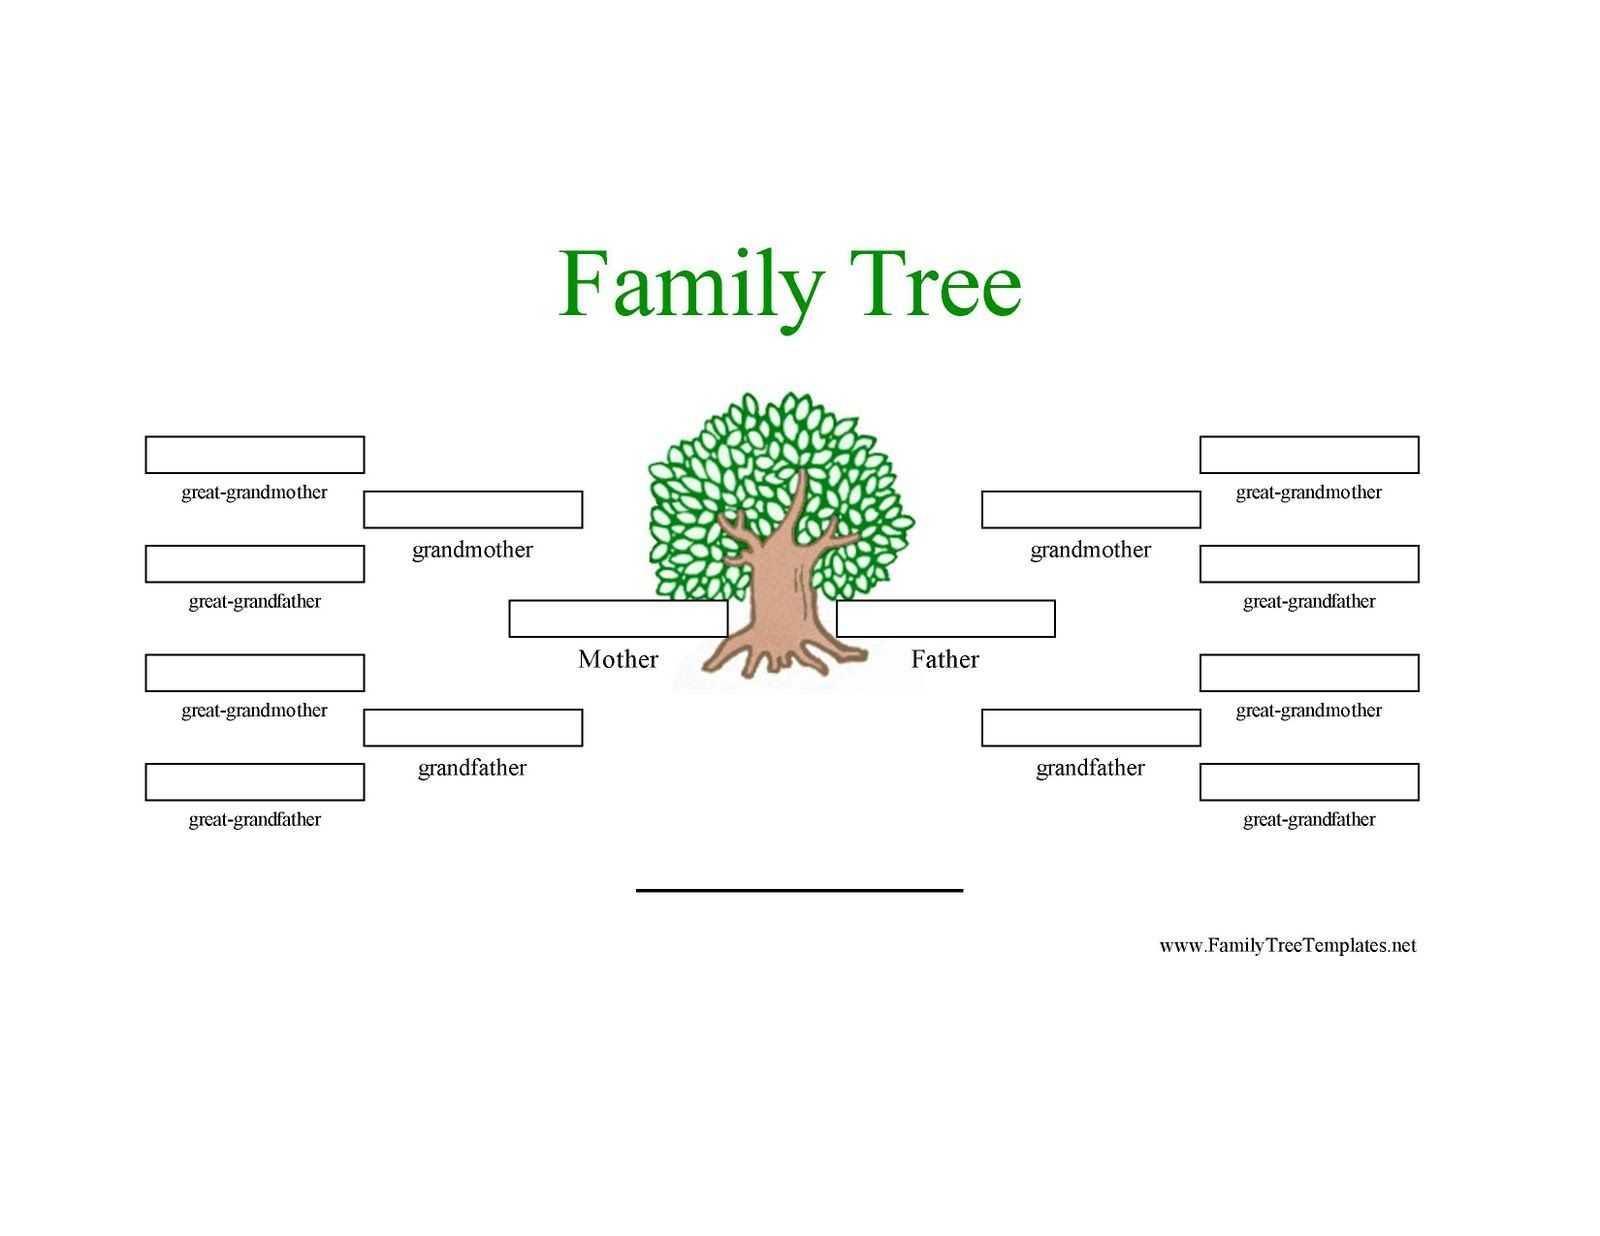 12 Generation Family Tree Sample | Generations Family Tree Throughout Blank Family Tree Template 3 Generations